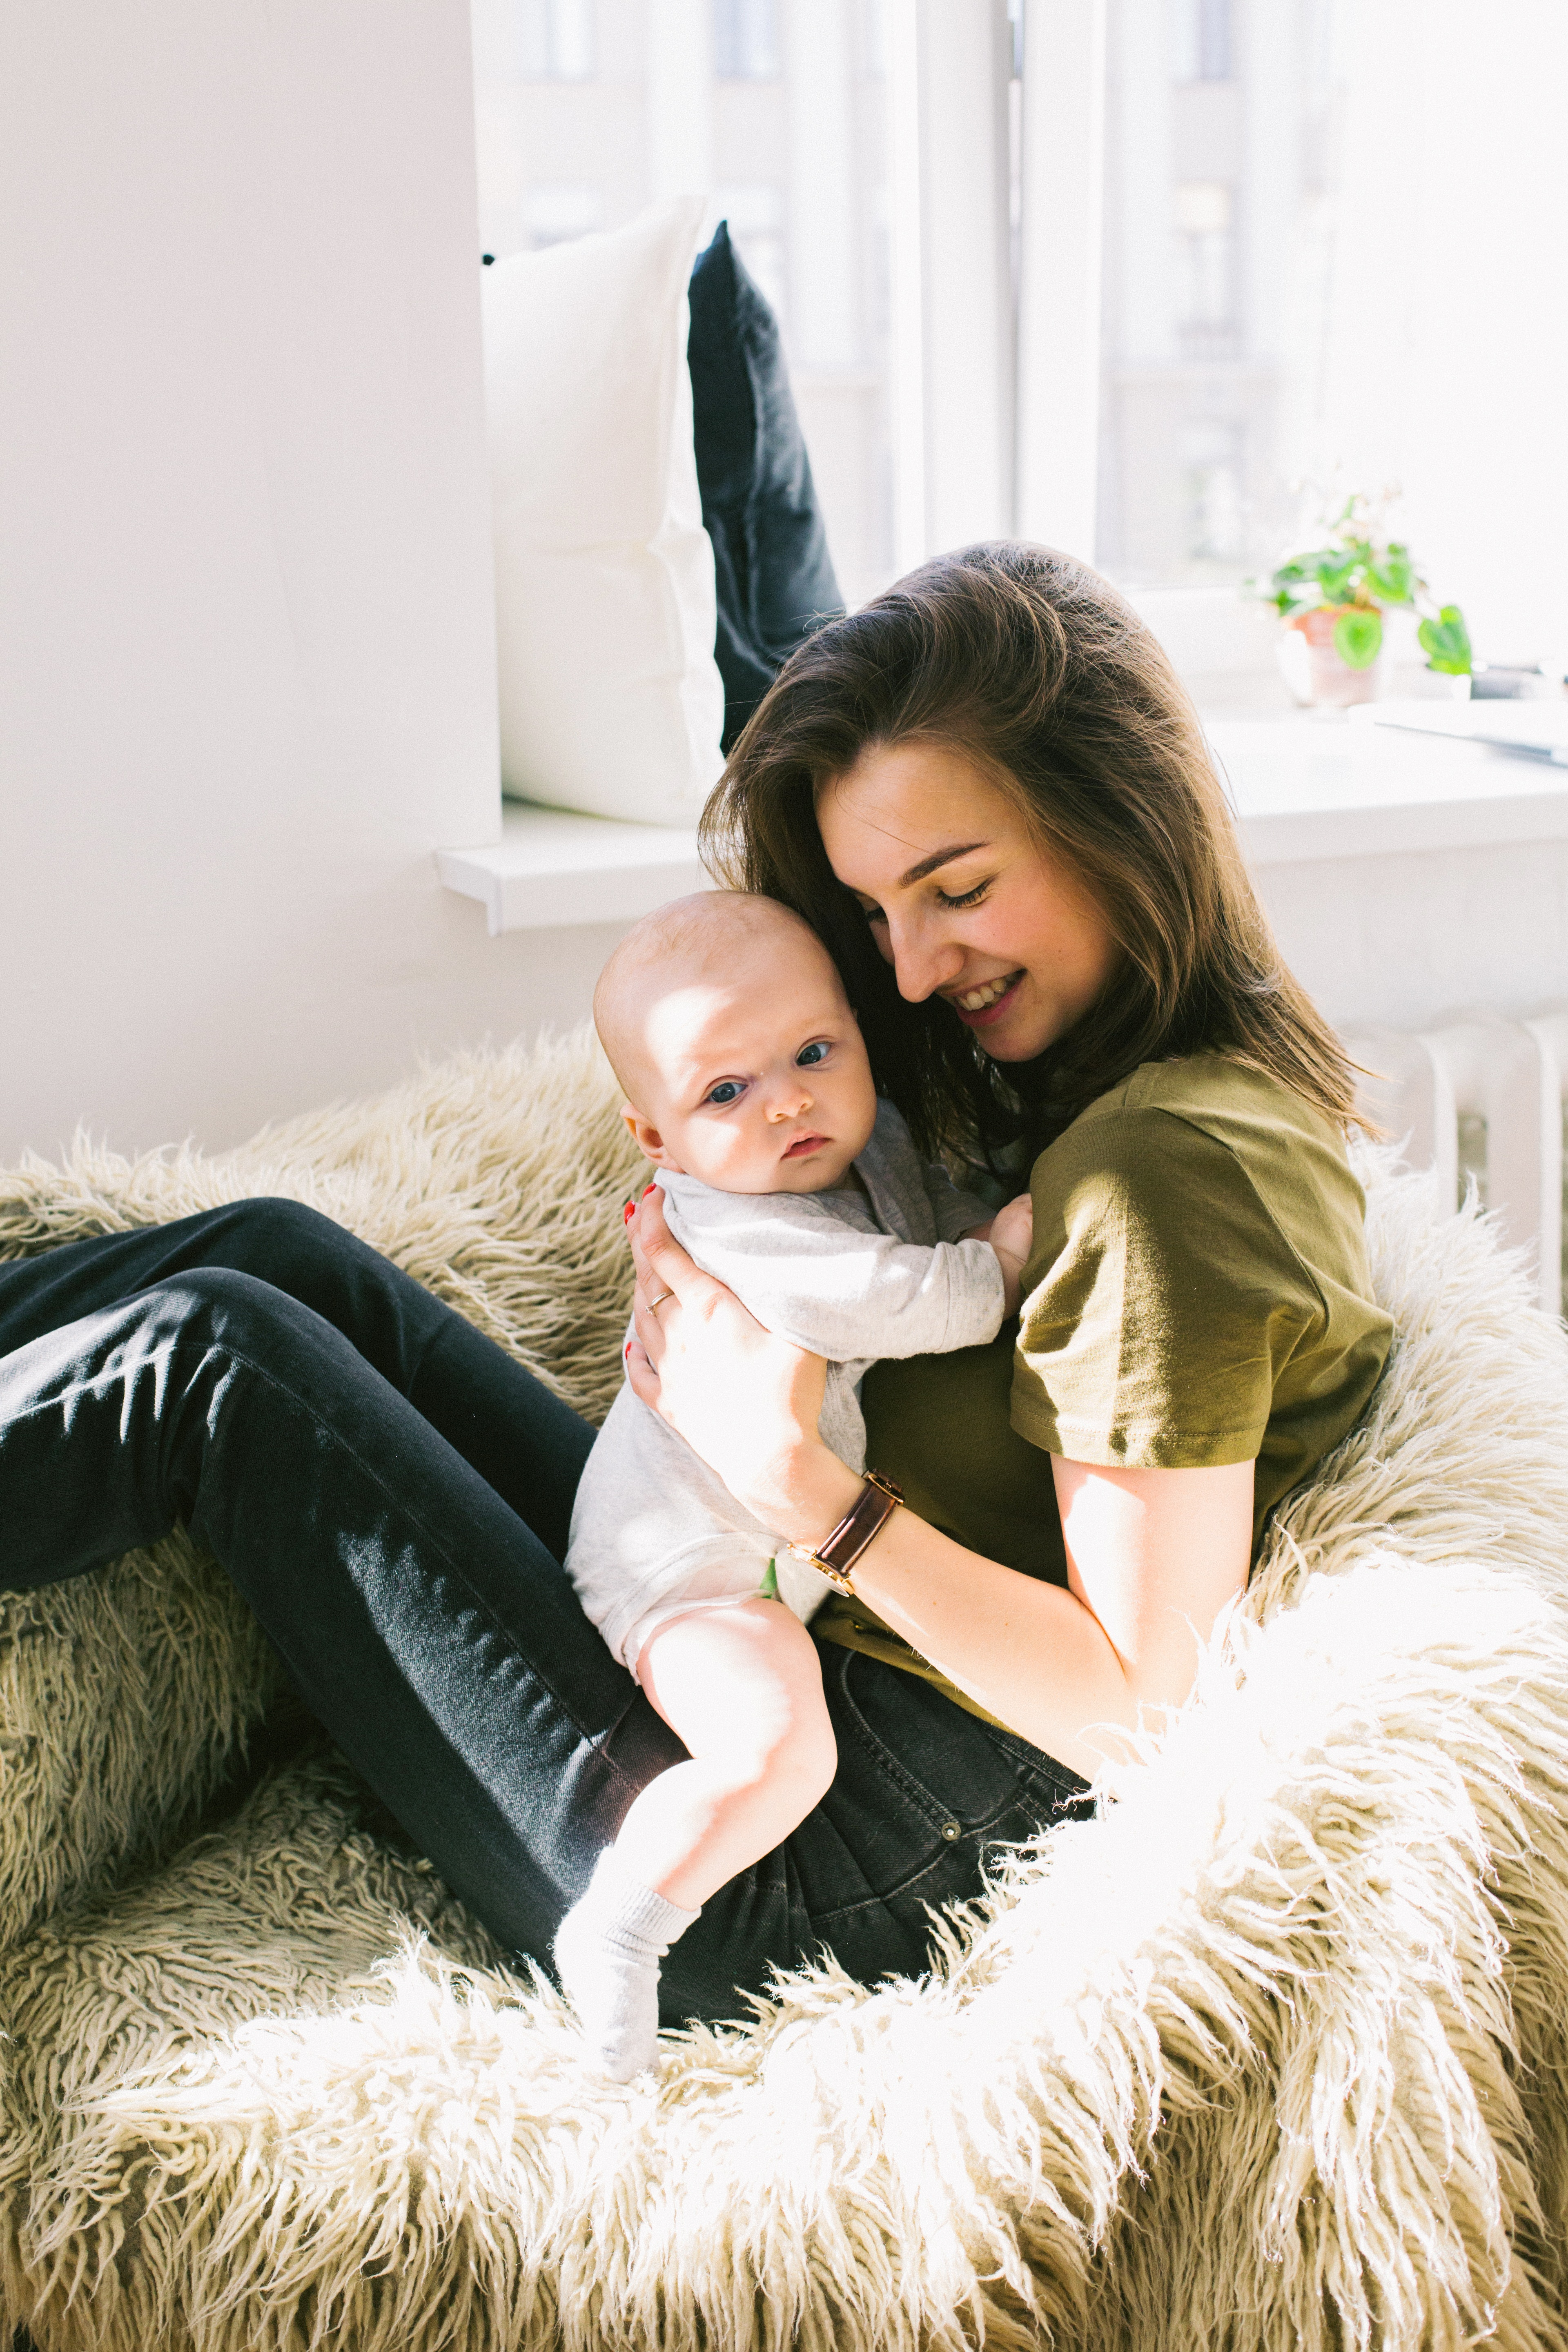 Woman in Green Shirt Holding Baby While Sitting, Adorable, Love, Woman, Togetherness, HQ Photo